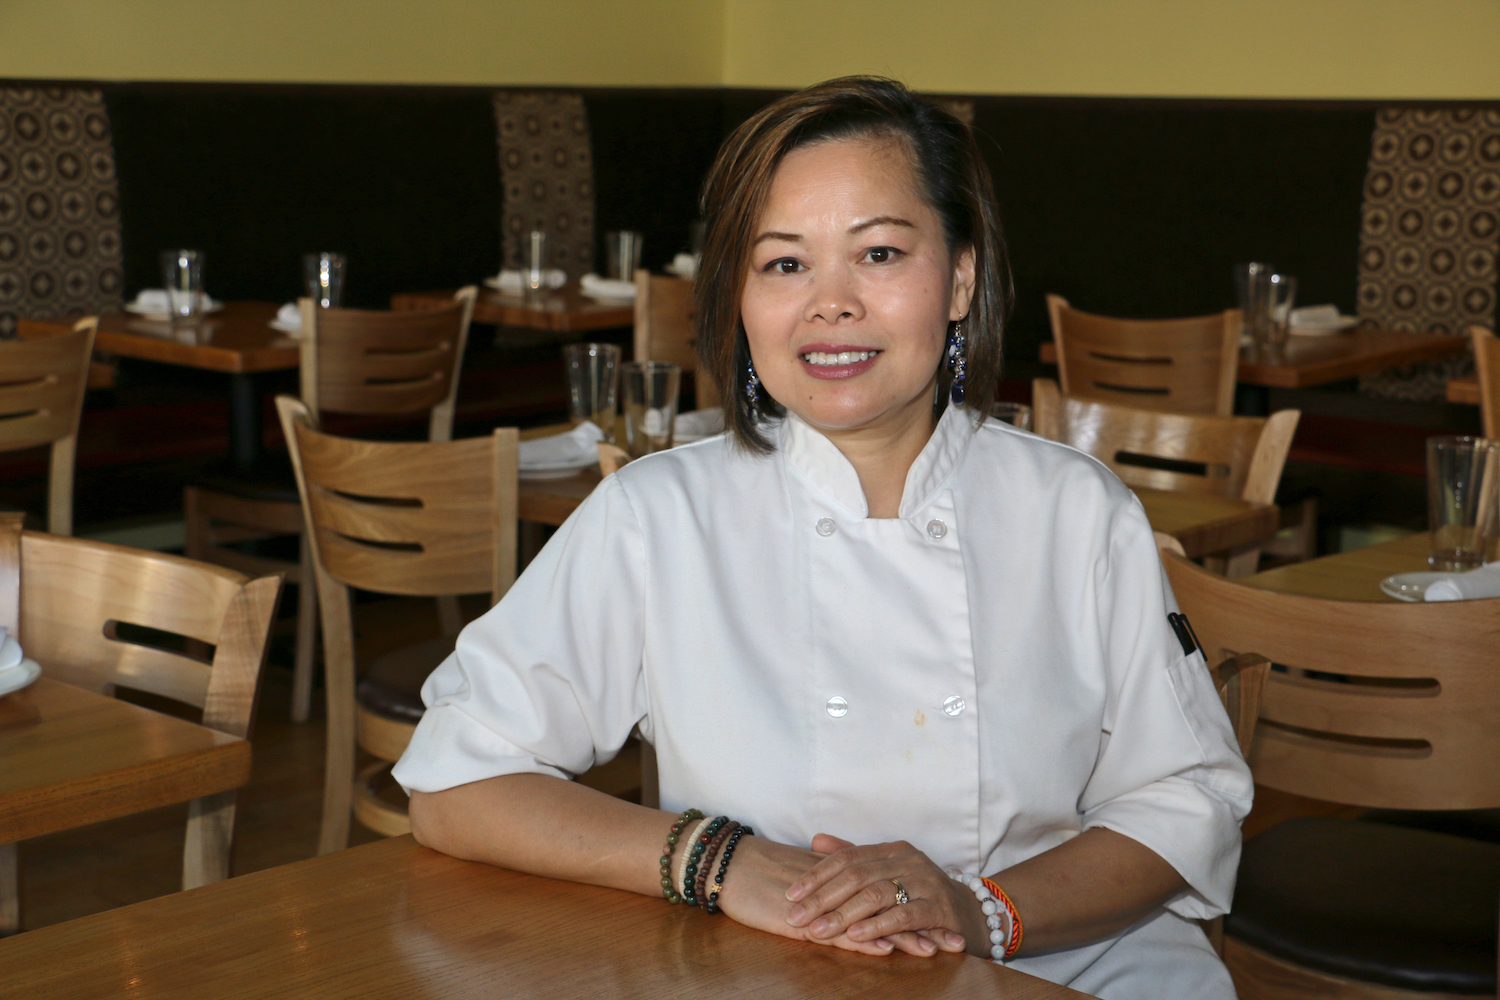 Chef Seng Portrait - Jai Williams low res